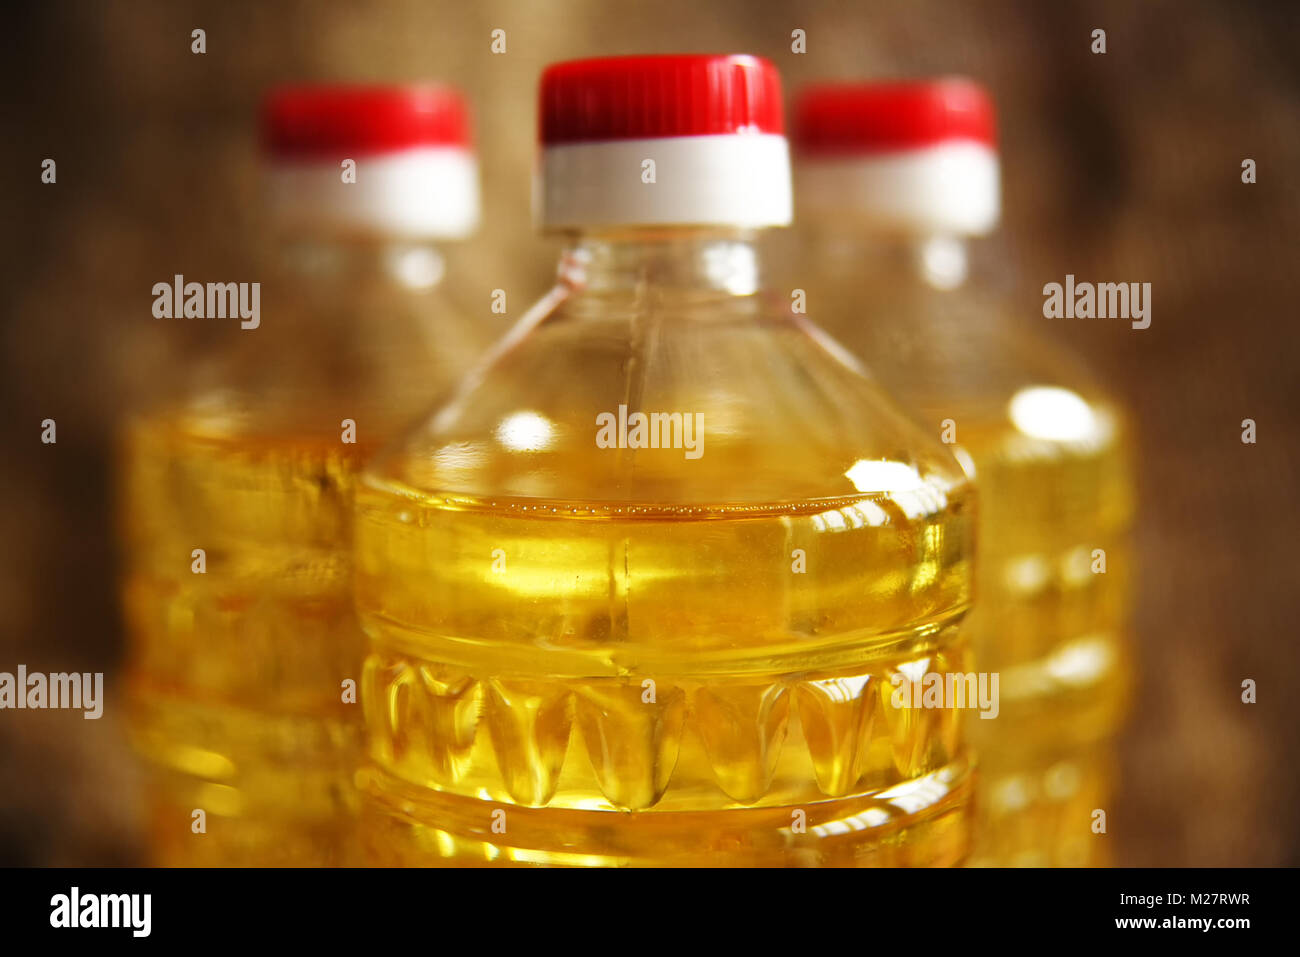 bottles with sunflower oil on a background of burlap closeup - Stock Image